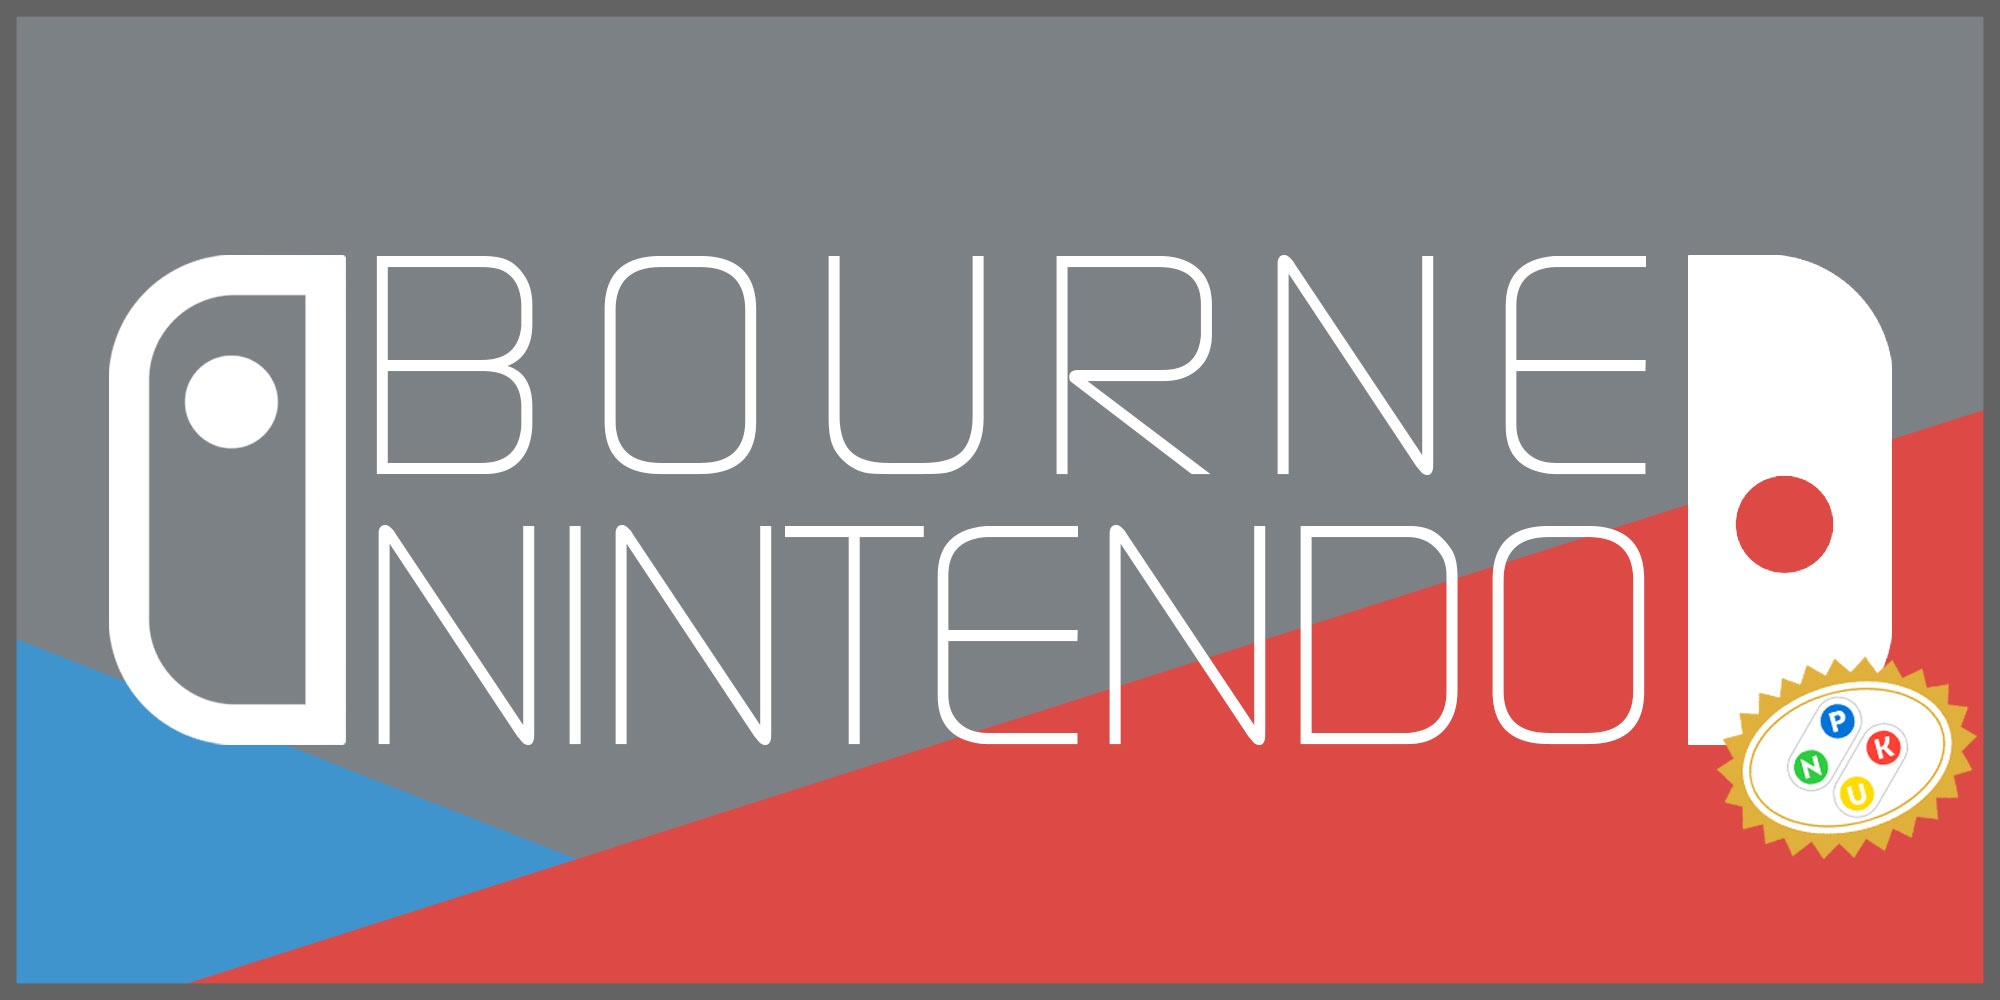 BourneNintendo – Mario Kart 8 Deluxe Battle Mode Tournament